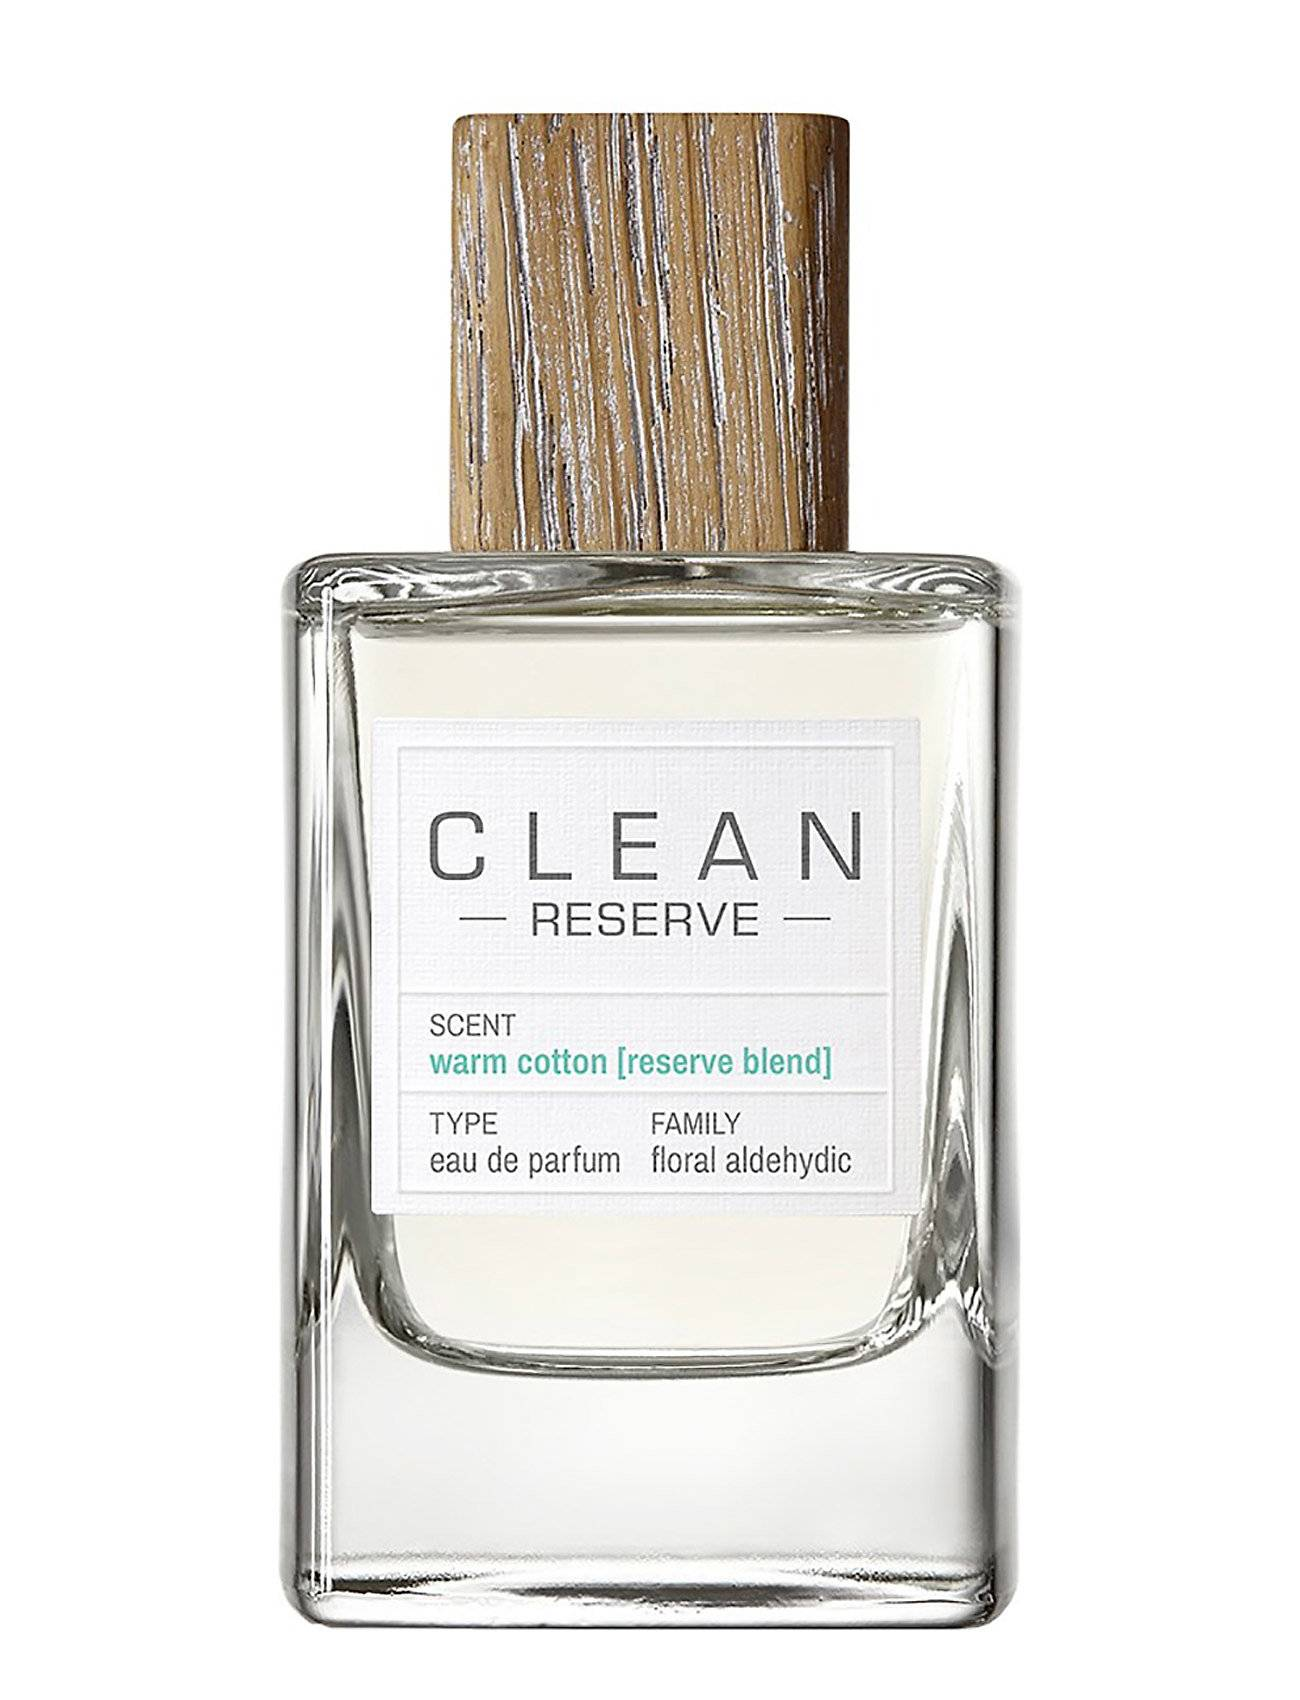 Clean Reserve Blends Warm Cotton